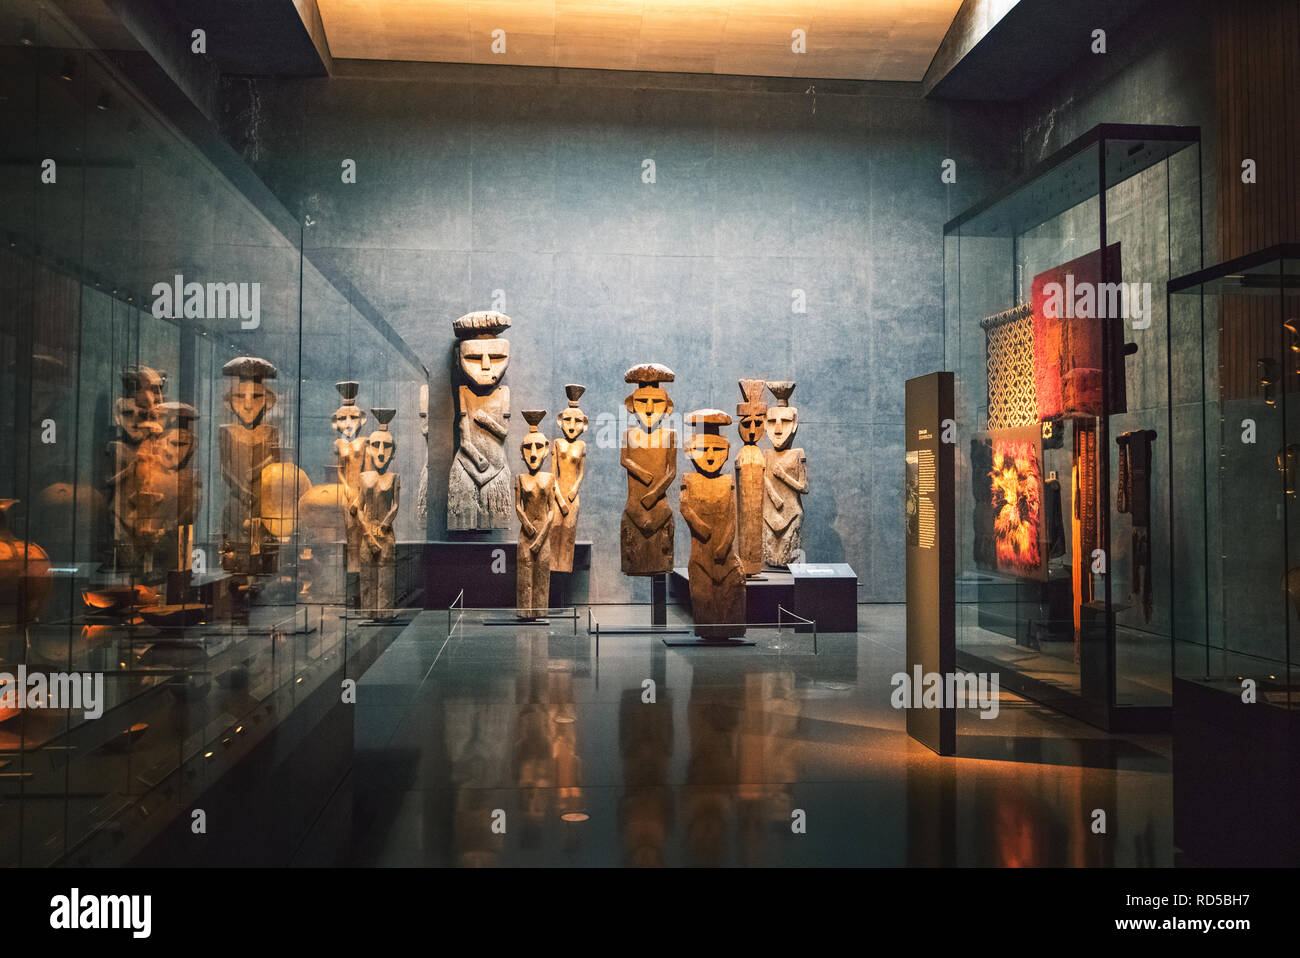 Chemamull wood statues at Pre-columbian Art Museum - Santiago, Chile Stock Photo